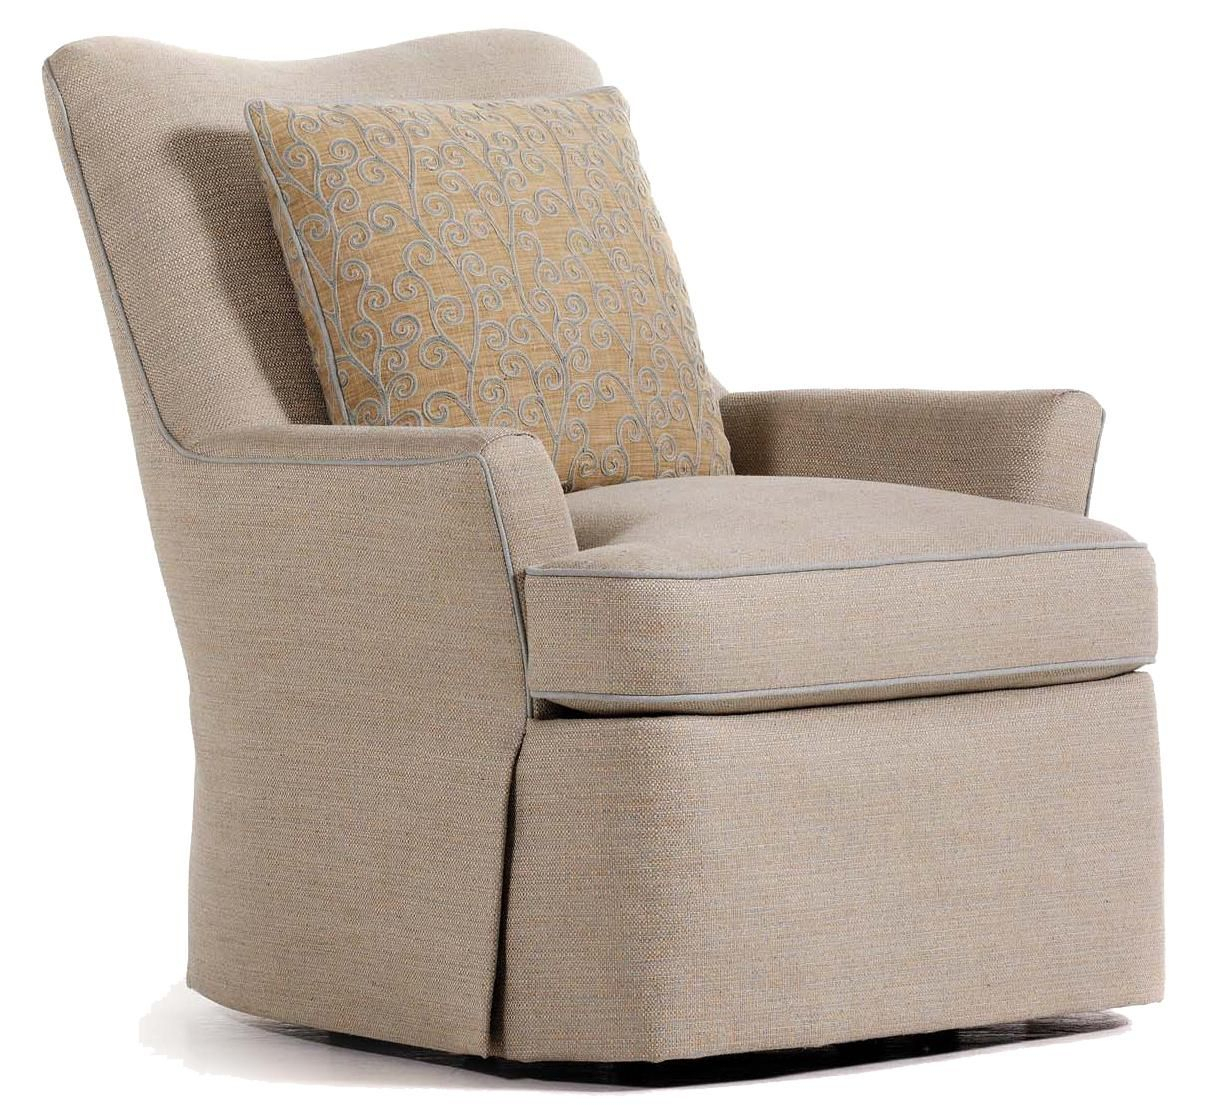 Durban Swivel Rockerjessica Charles | Decorating In 2018 With Regard To Katrina Beige Swivel Glider Chairs (View 2 of 25)